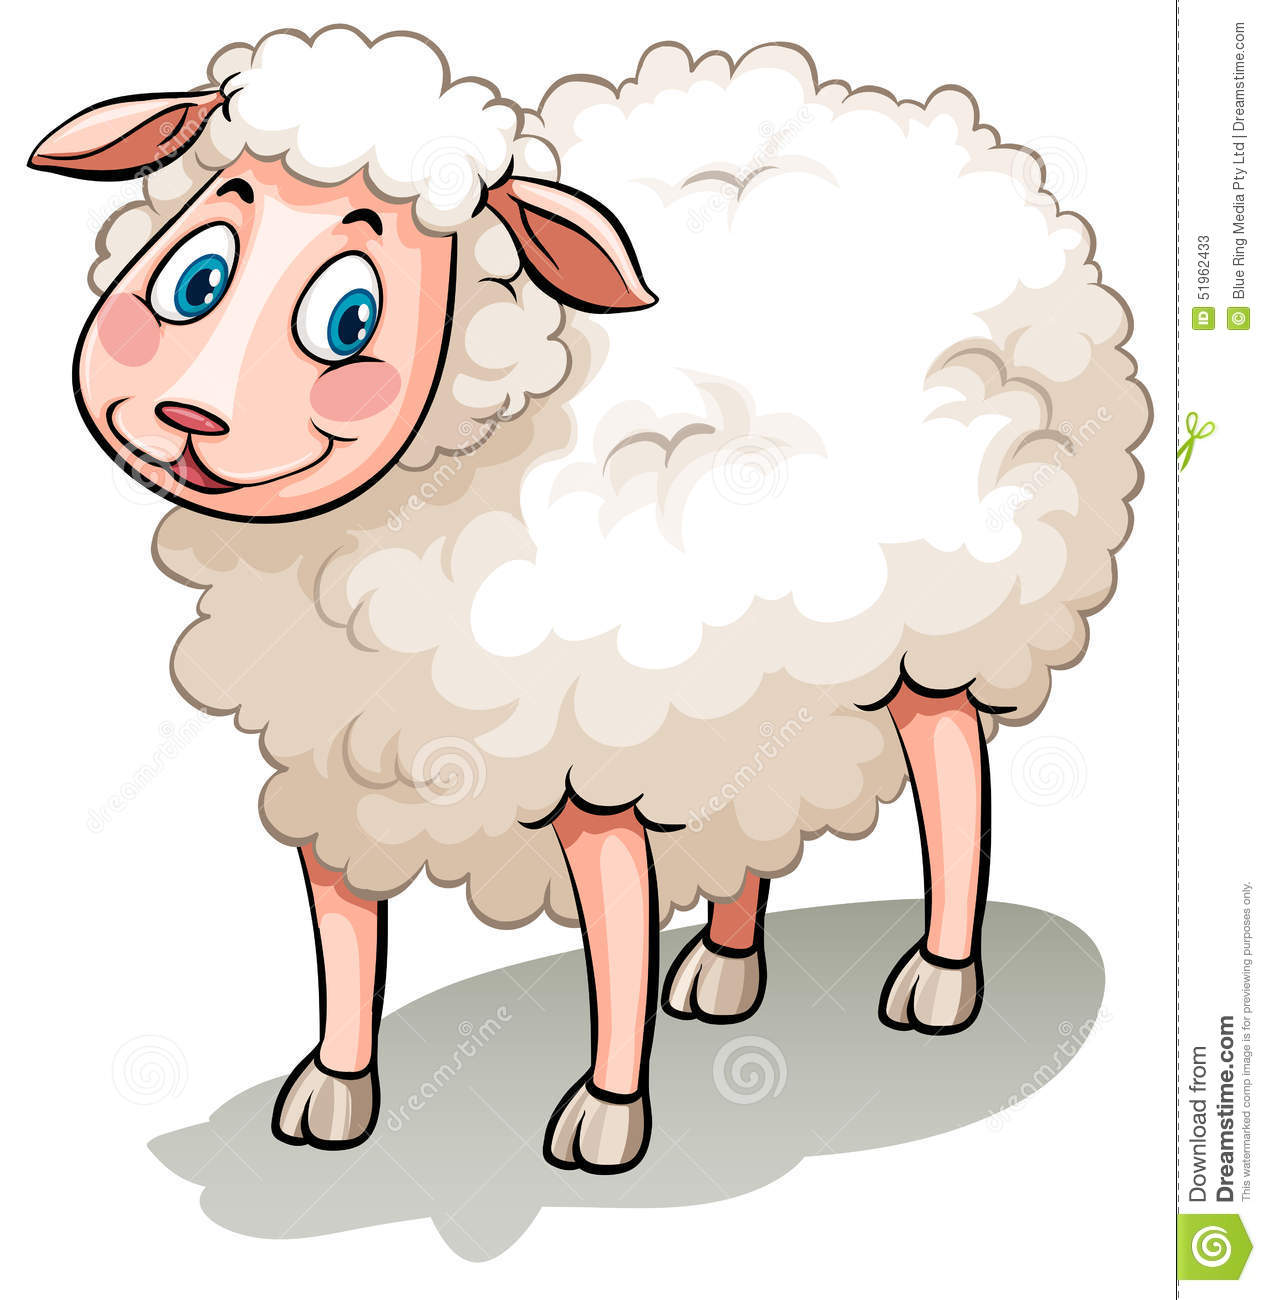 Animal Farm Wallpaper Sheep Stock Vector Image 51962433